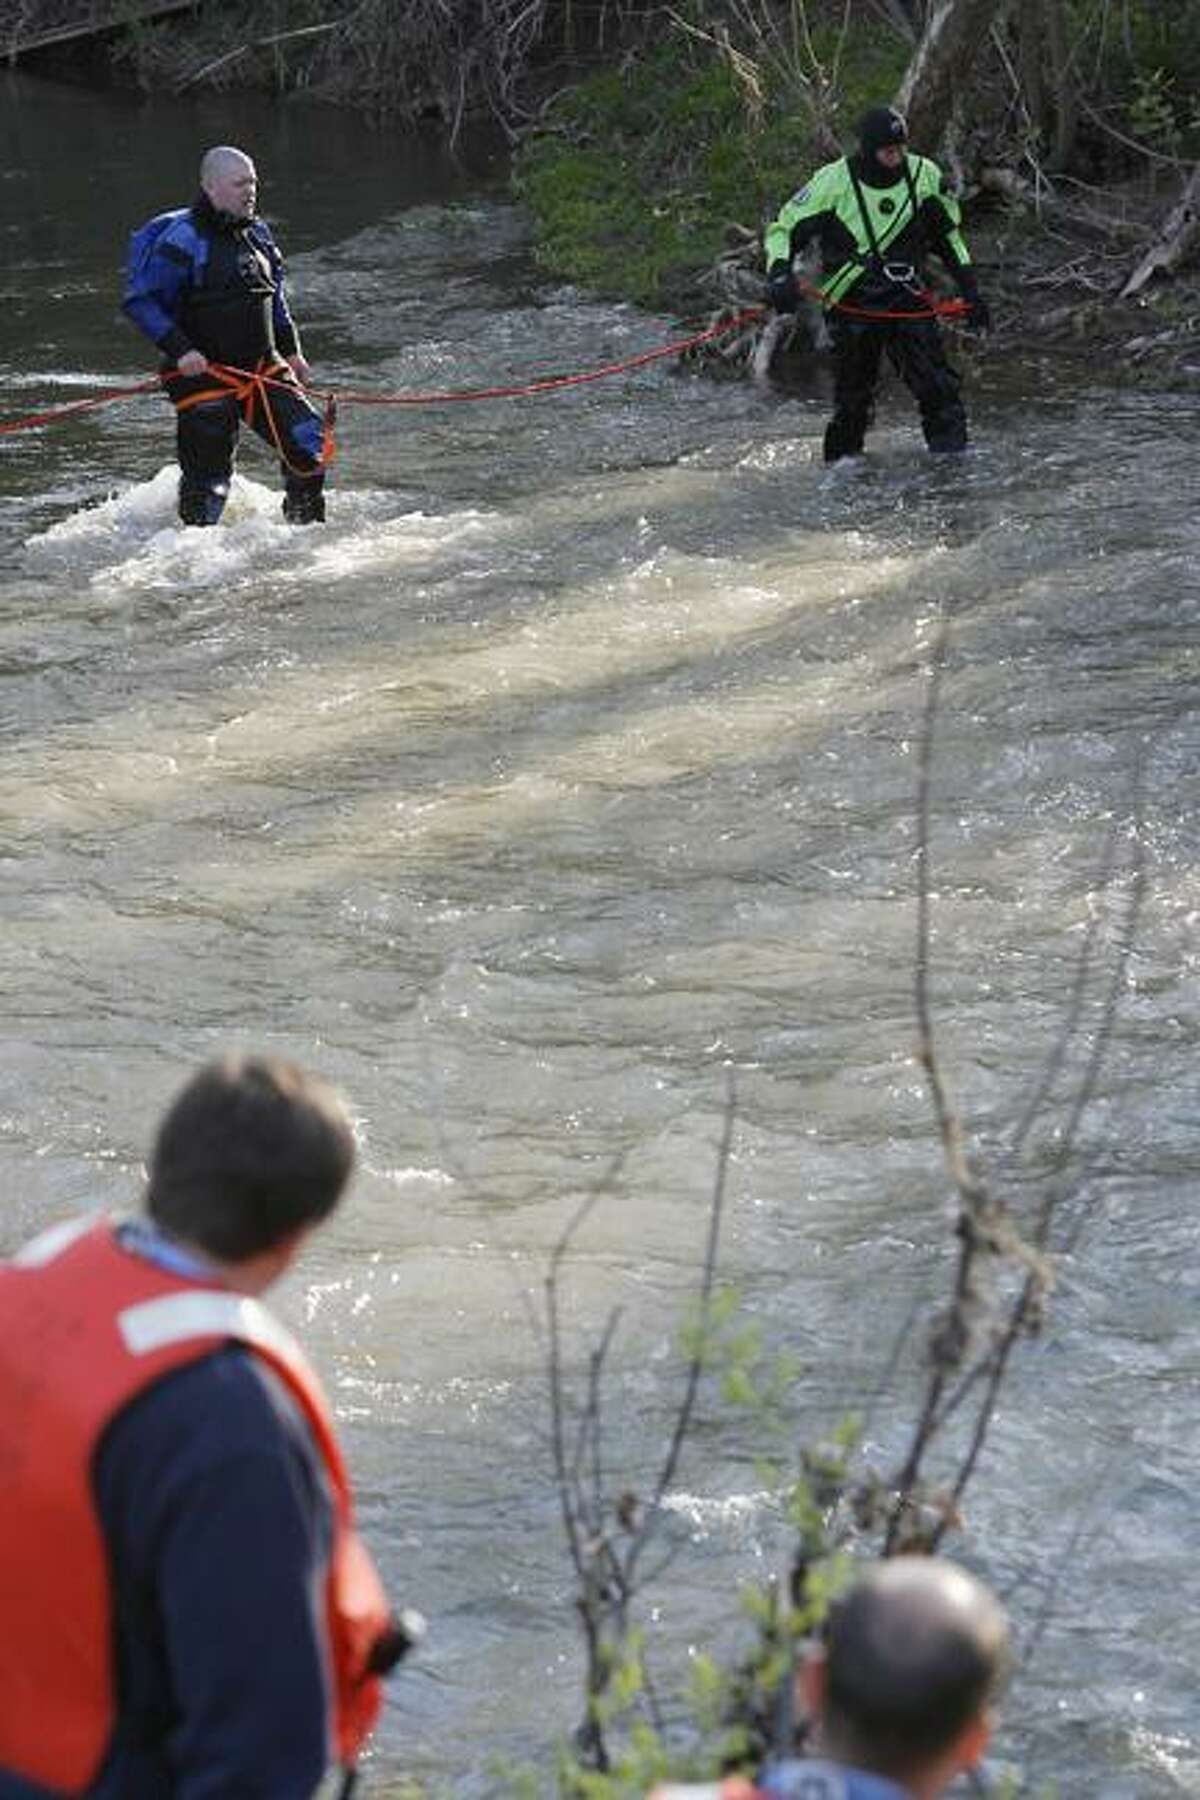 Dispatch Staff Photo by JOHN HAEGERRescue Diver crews search a section of Oneida Creek at the Madison Oneida County line in Kenwood on Thursday, May 5, 2011.